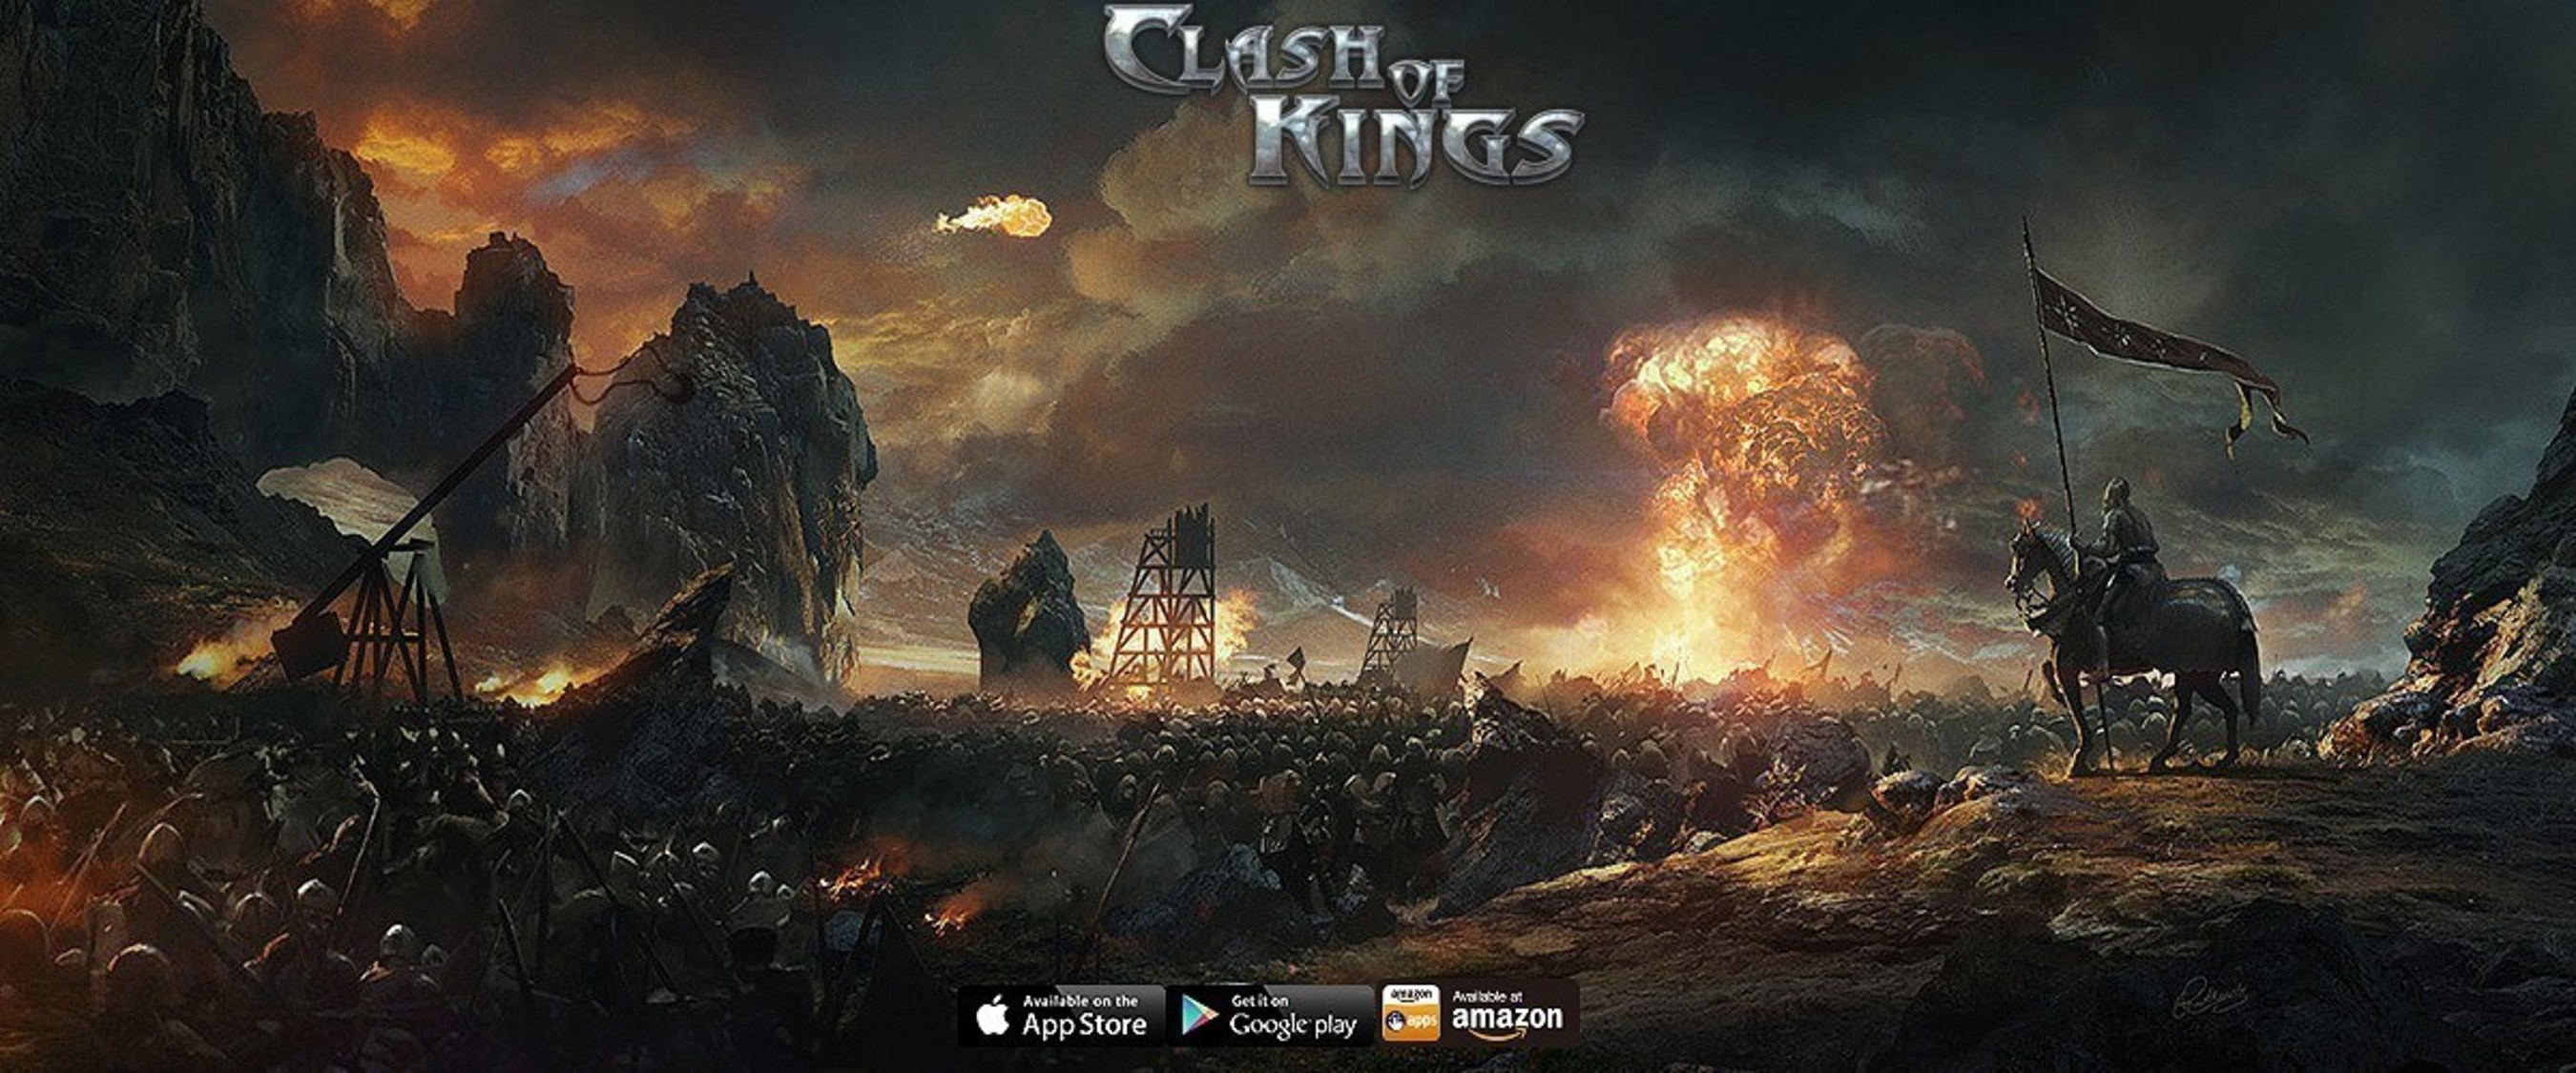 Clash of Kings is celebrating 100 million downloads since its release in August last year